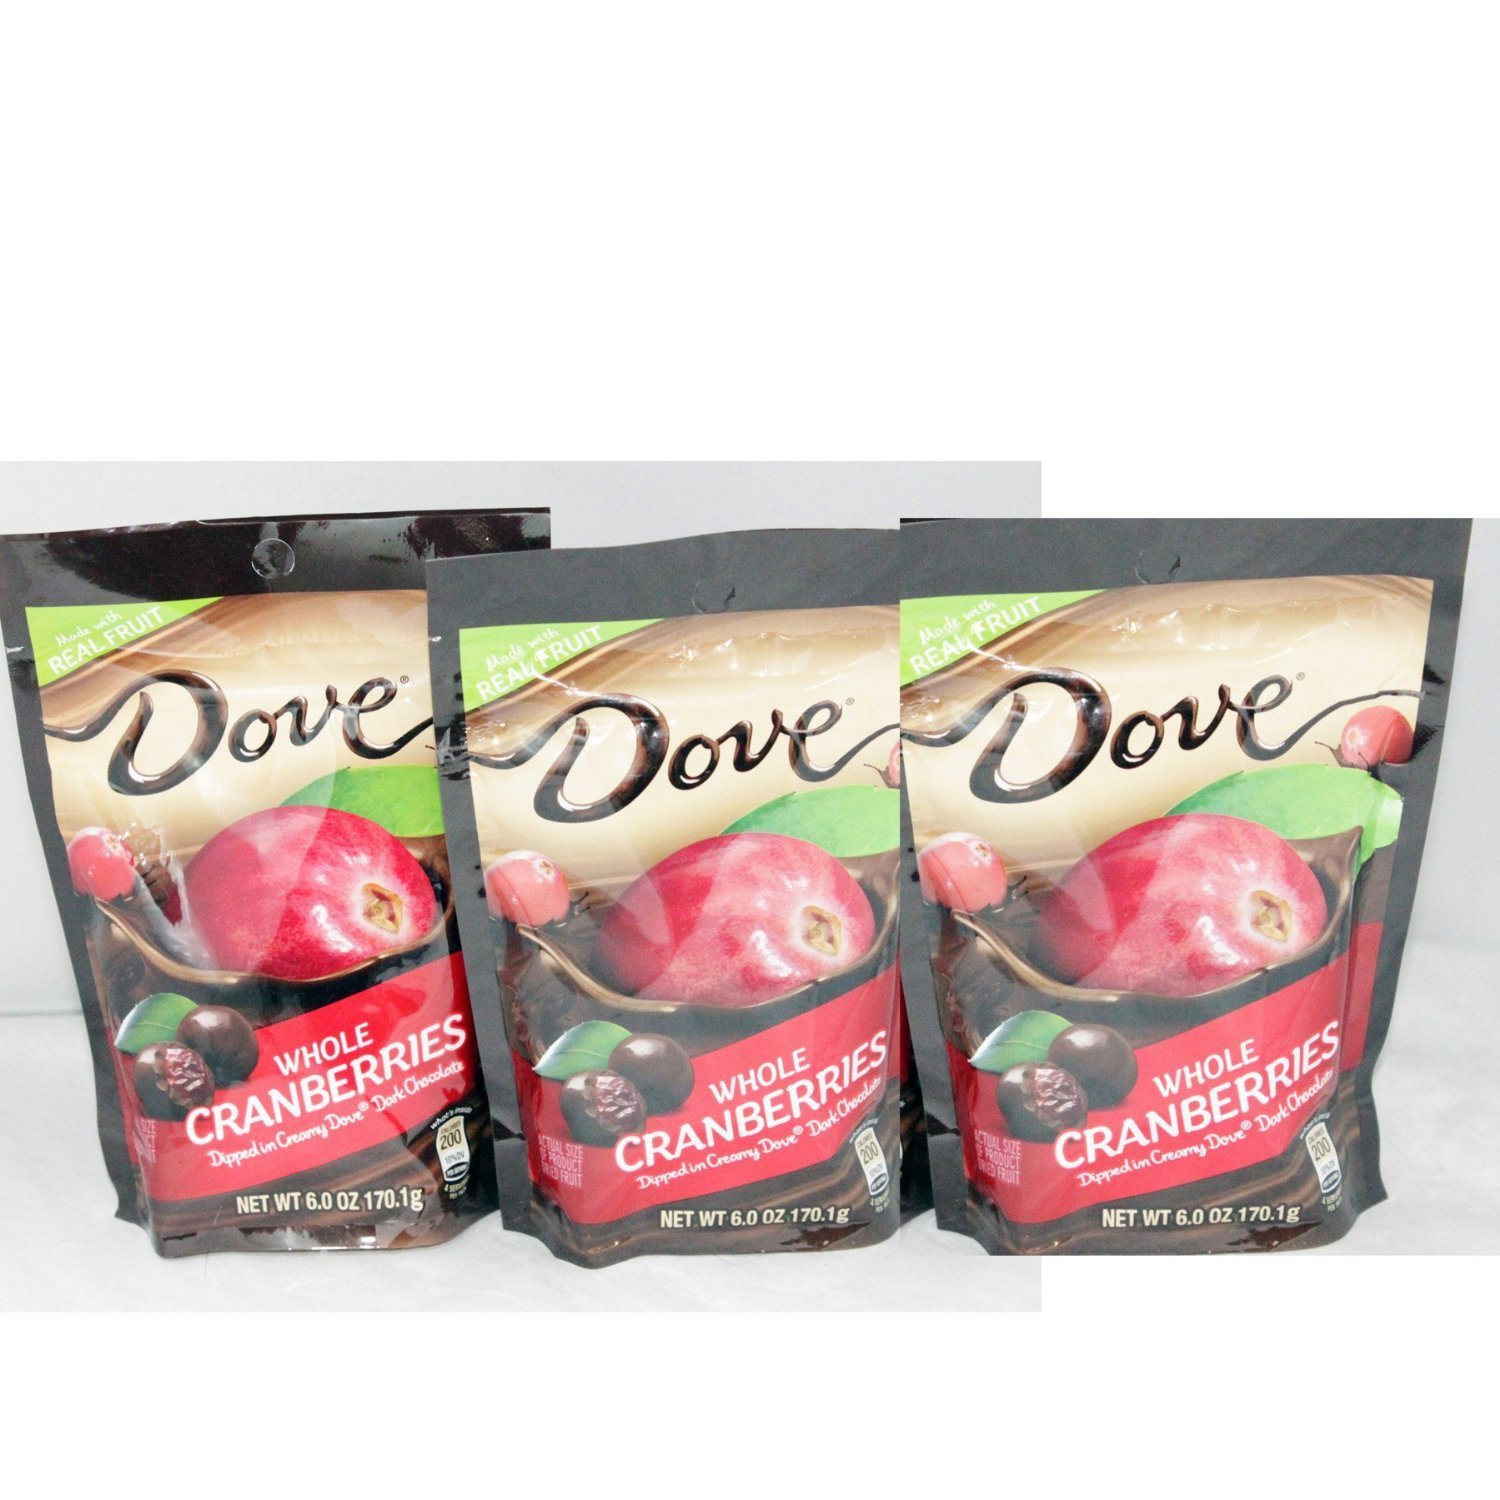 Dove Whole Dried Cranberries 3 PACK - Dipped in Creamy Dove Dark Chocolate: 3 Bags of 6 Oz Size